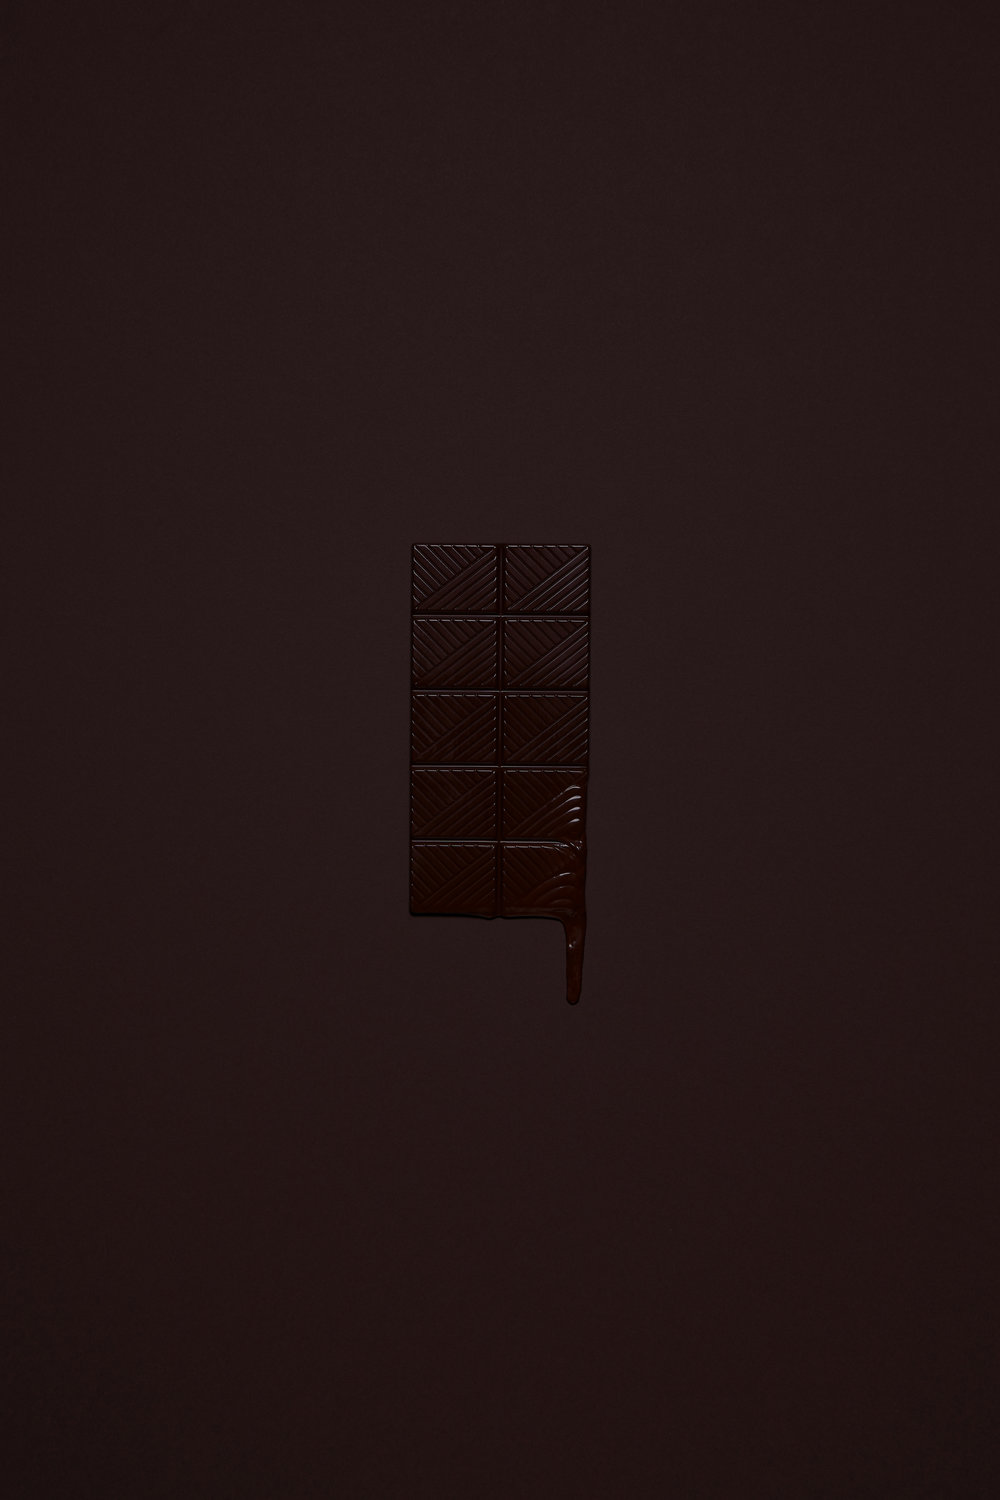 ColorPlan_Bitter_Chocolade_2.jpg